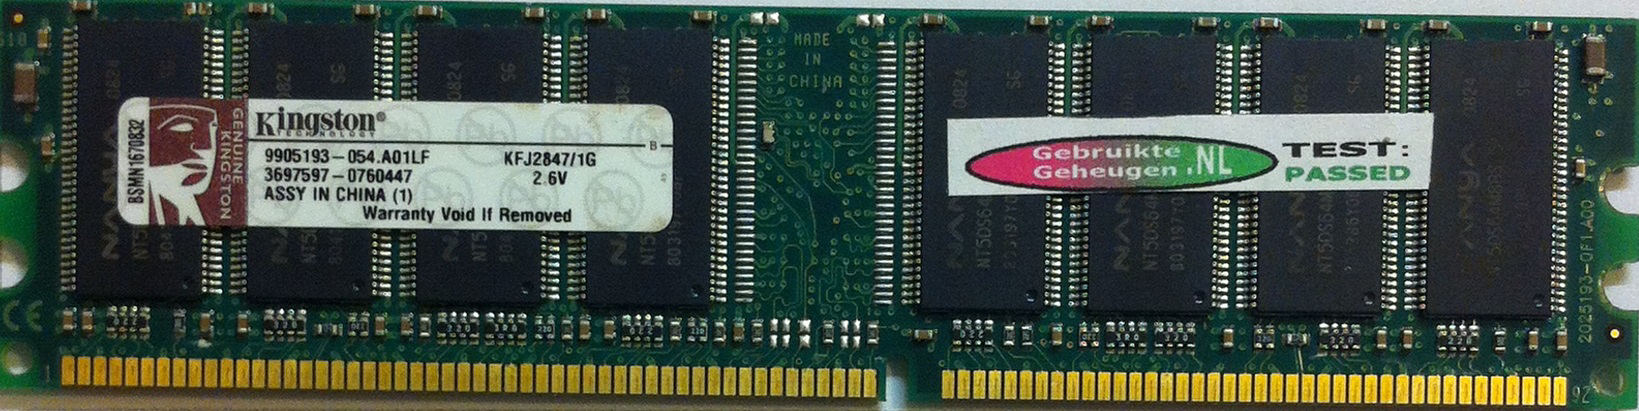 Kingston 1GB DDR PC3200U 400MHz